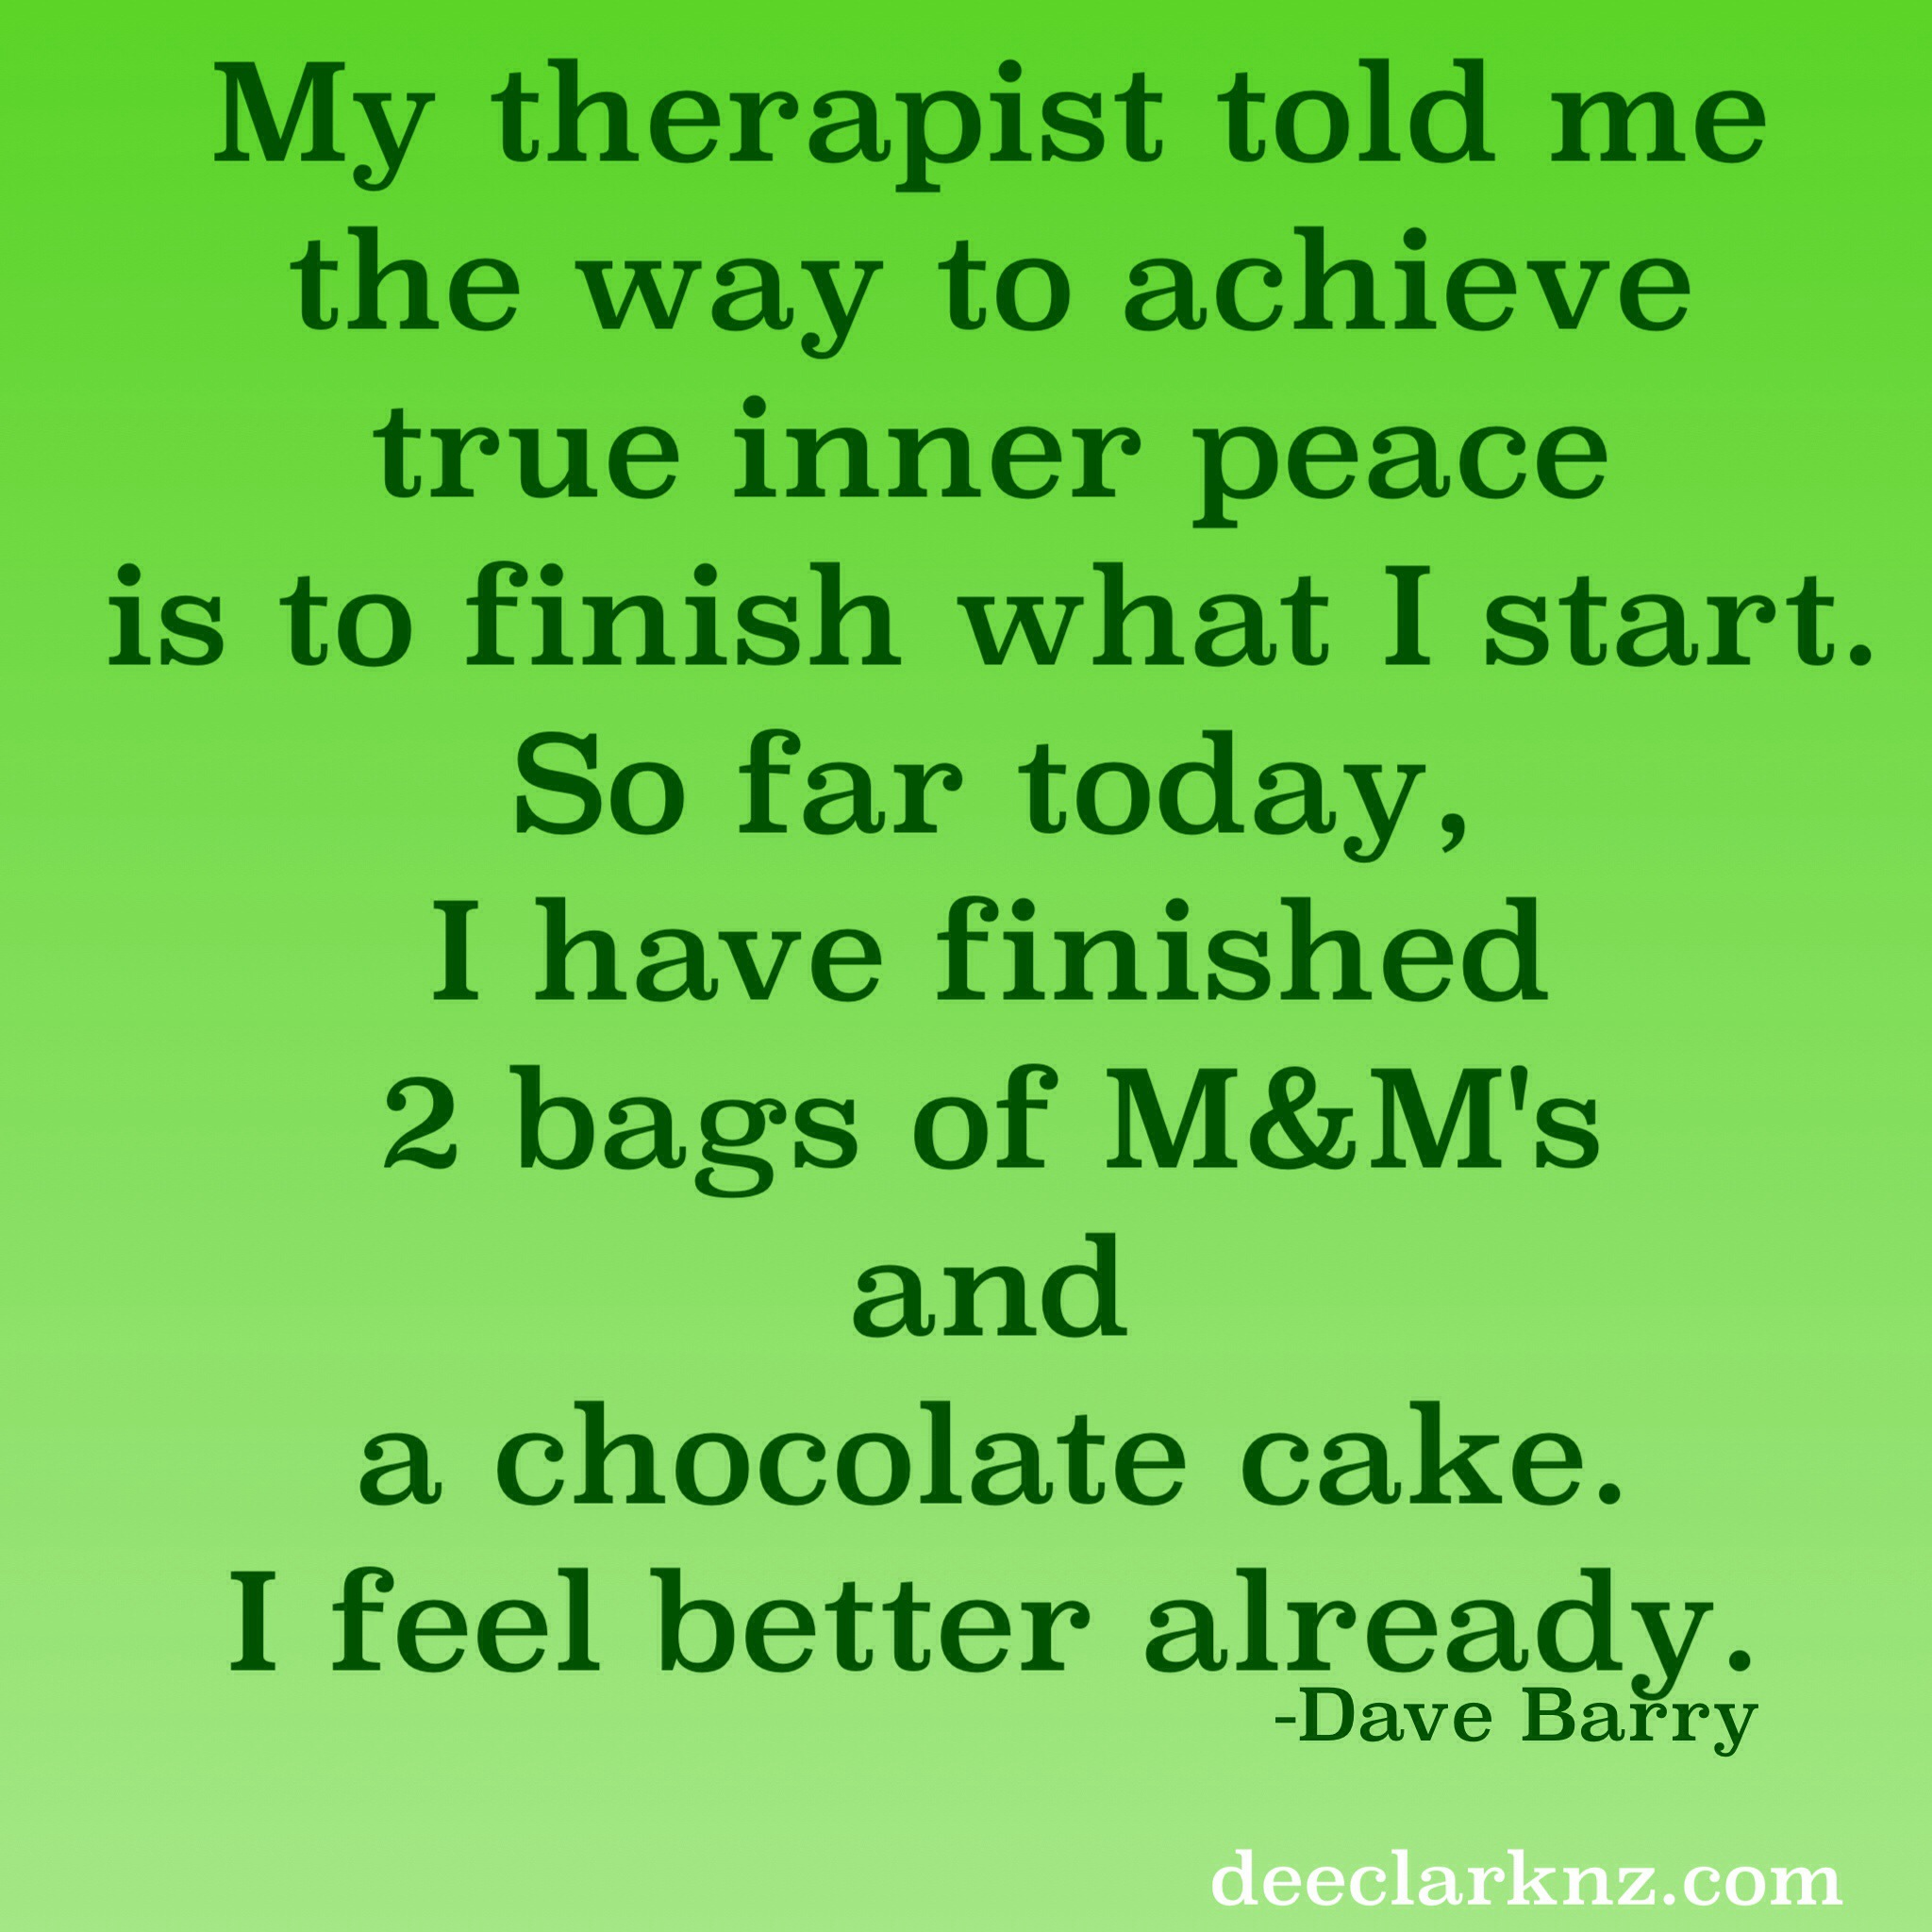 the best way to achieve true inner peace(humor)